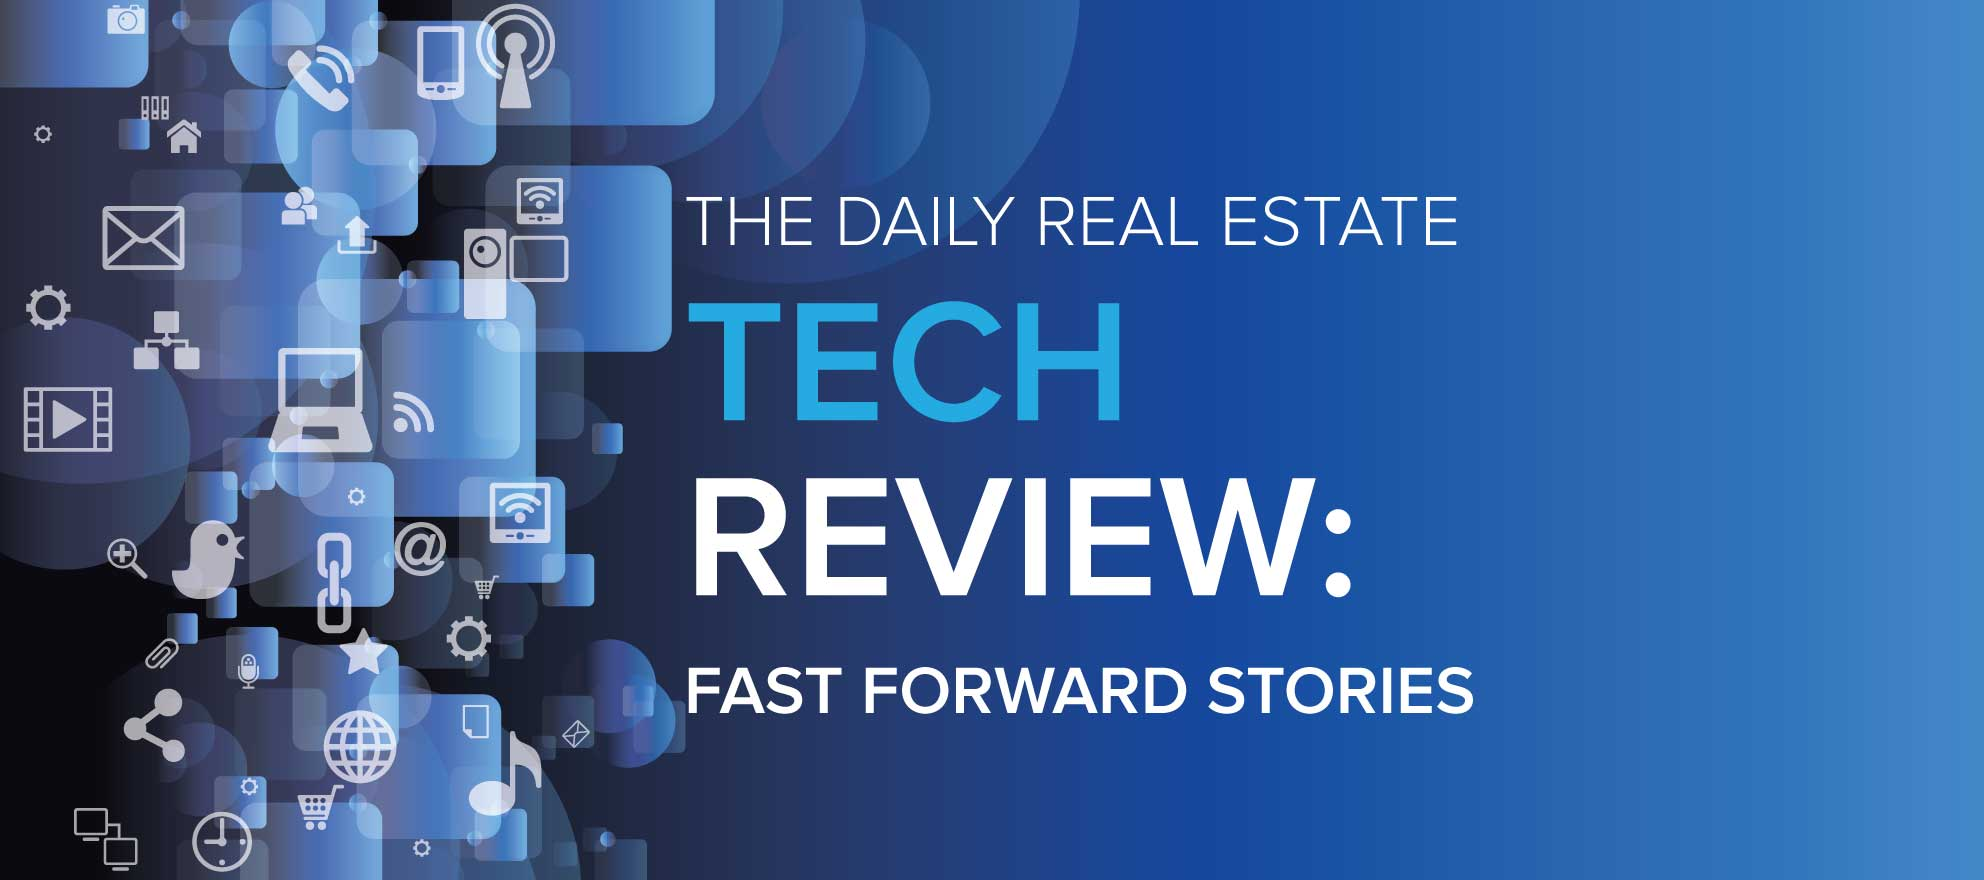 Fast Forward Stories will speed up your Web traffic with simple, effective video content